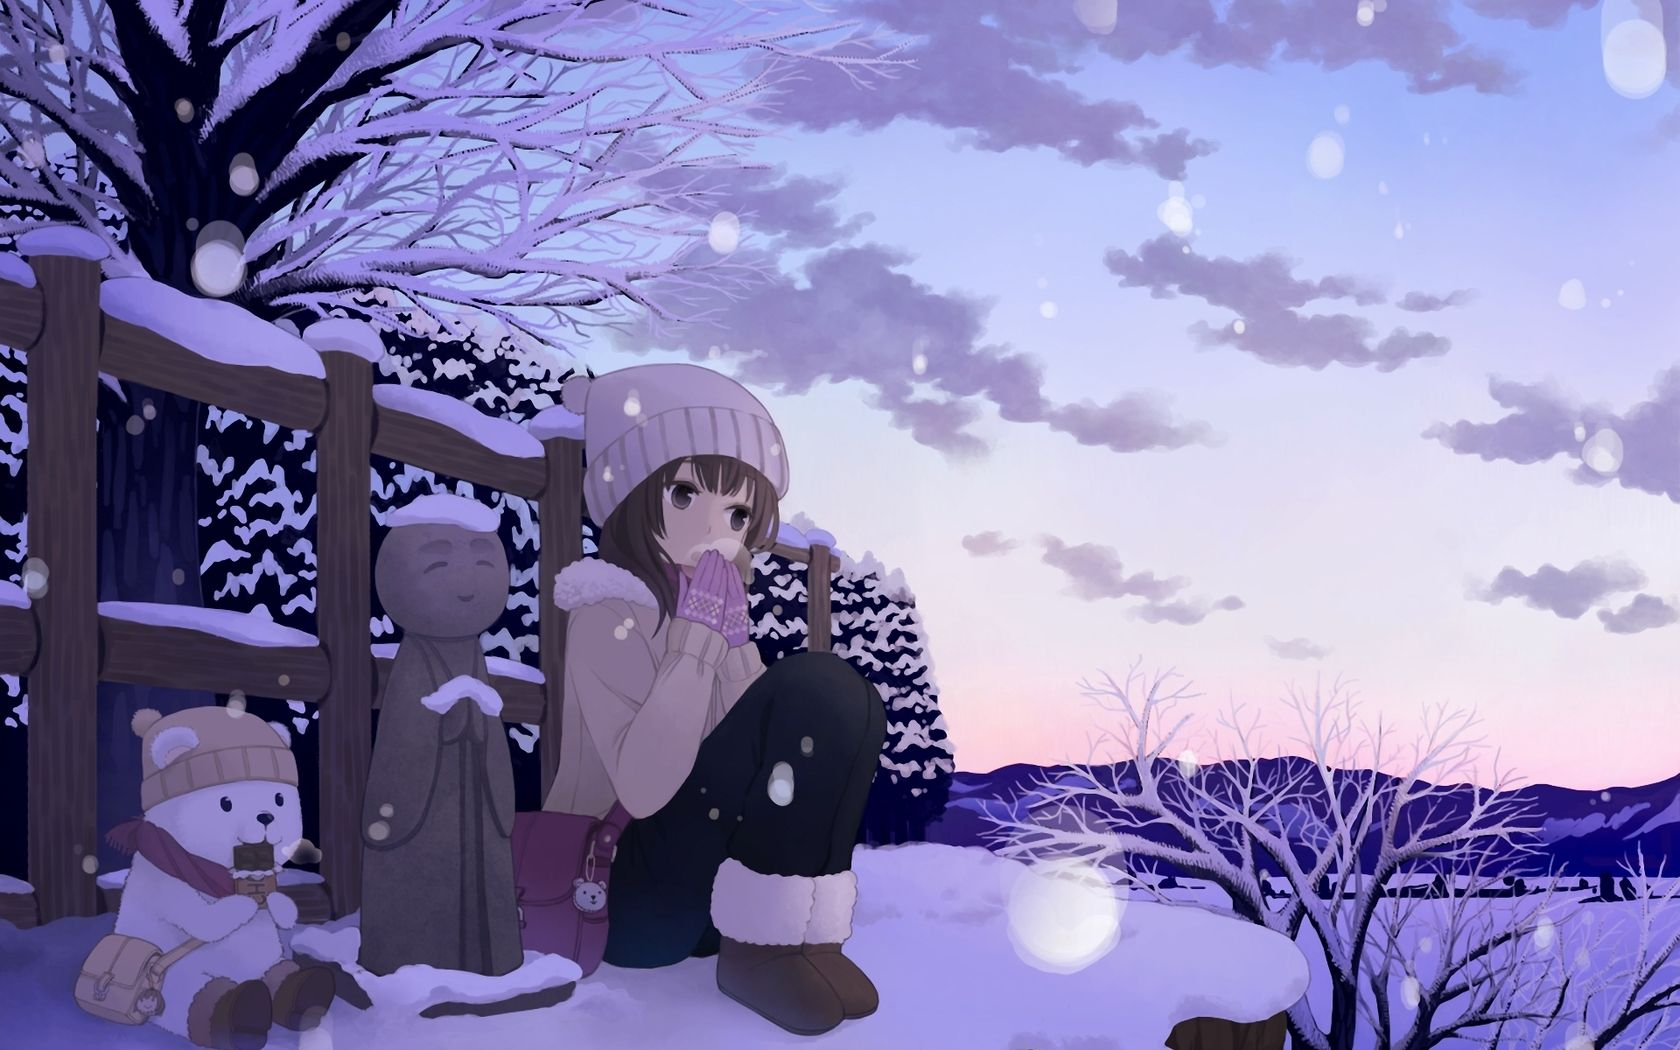 Anime Winter Wallpaper 42573 1680x1050 Px Anime Art Beautiful Winter Wallpaper Hd Anime Wallpaper